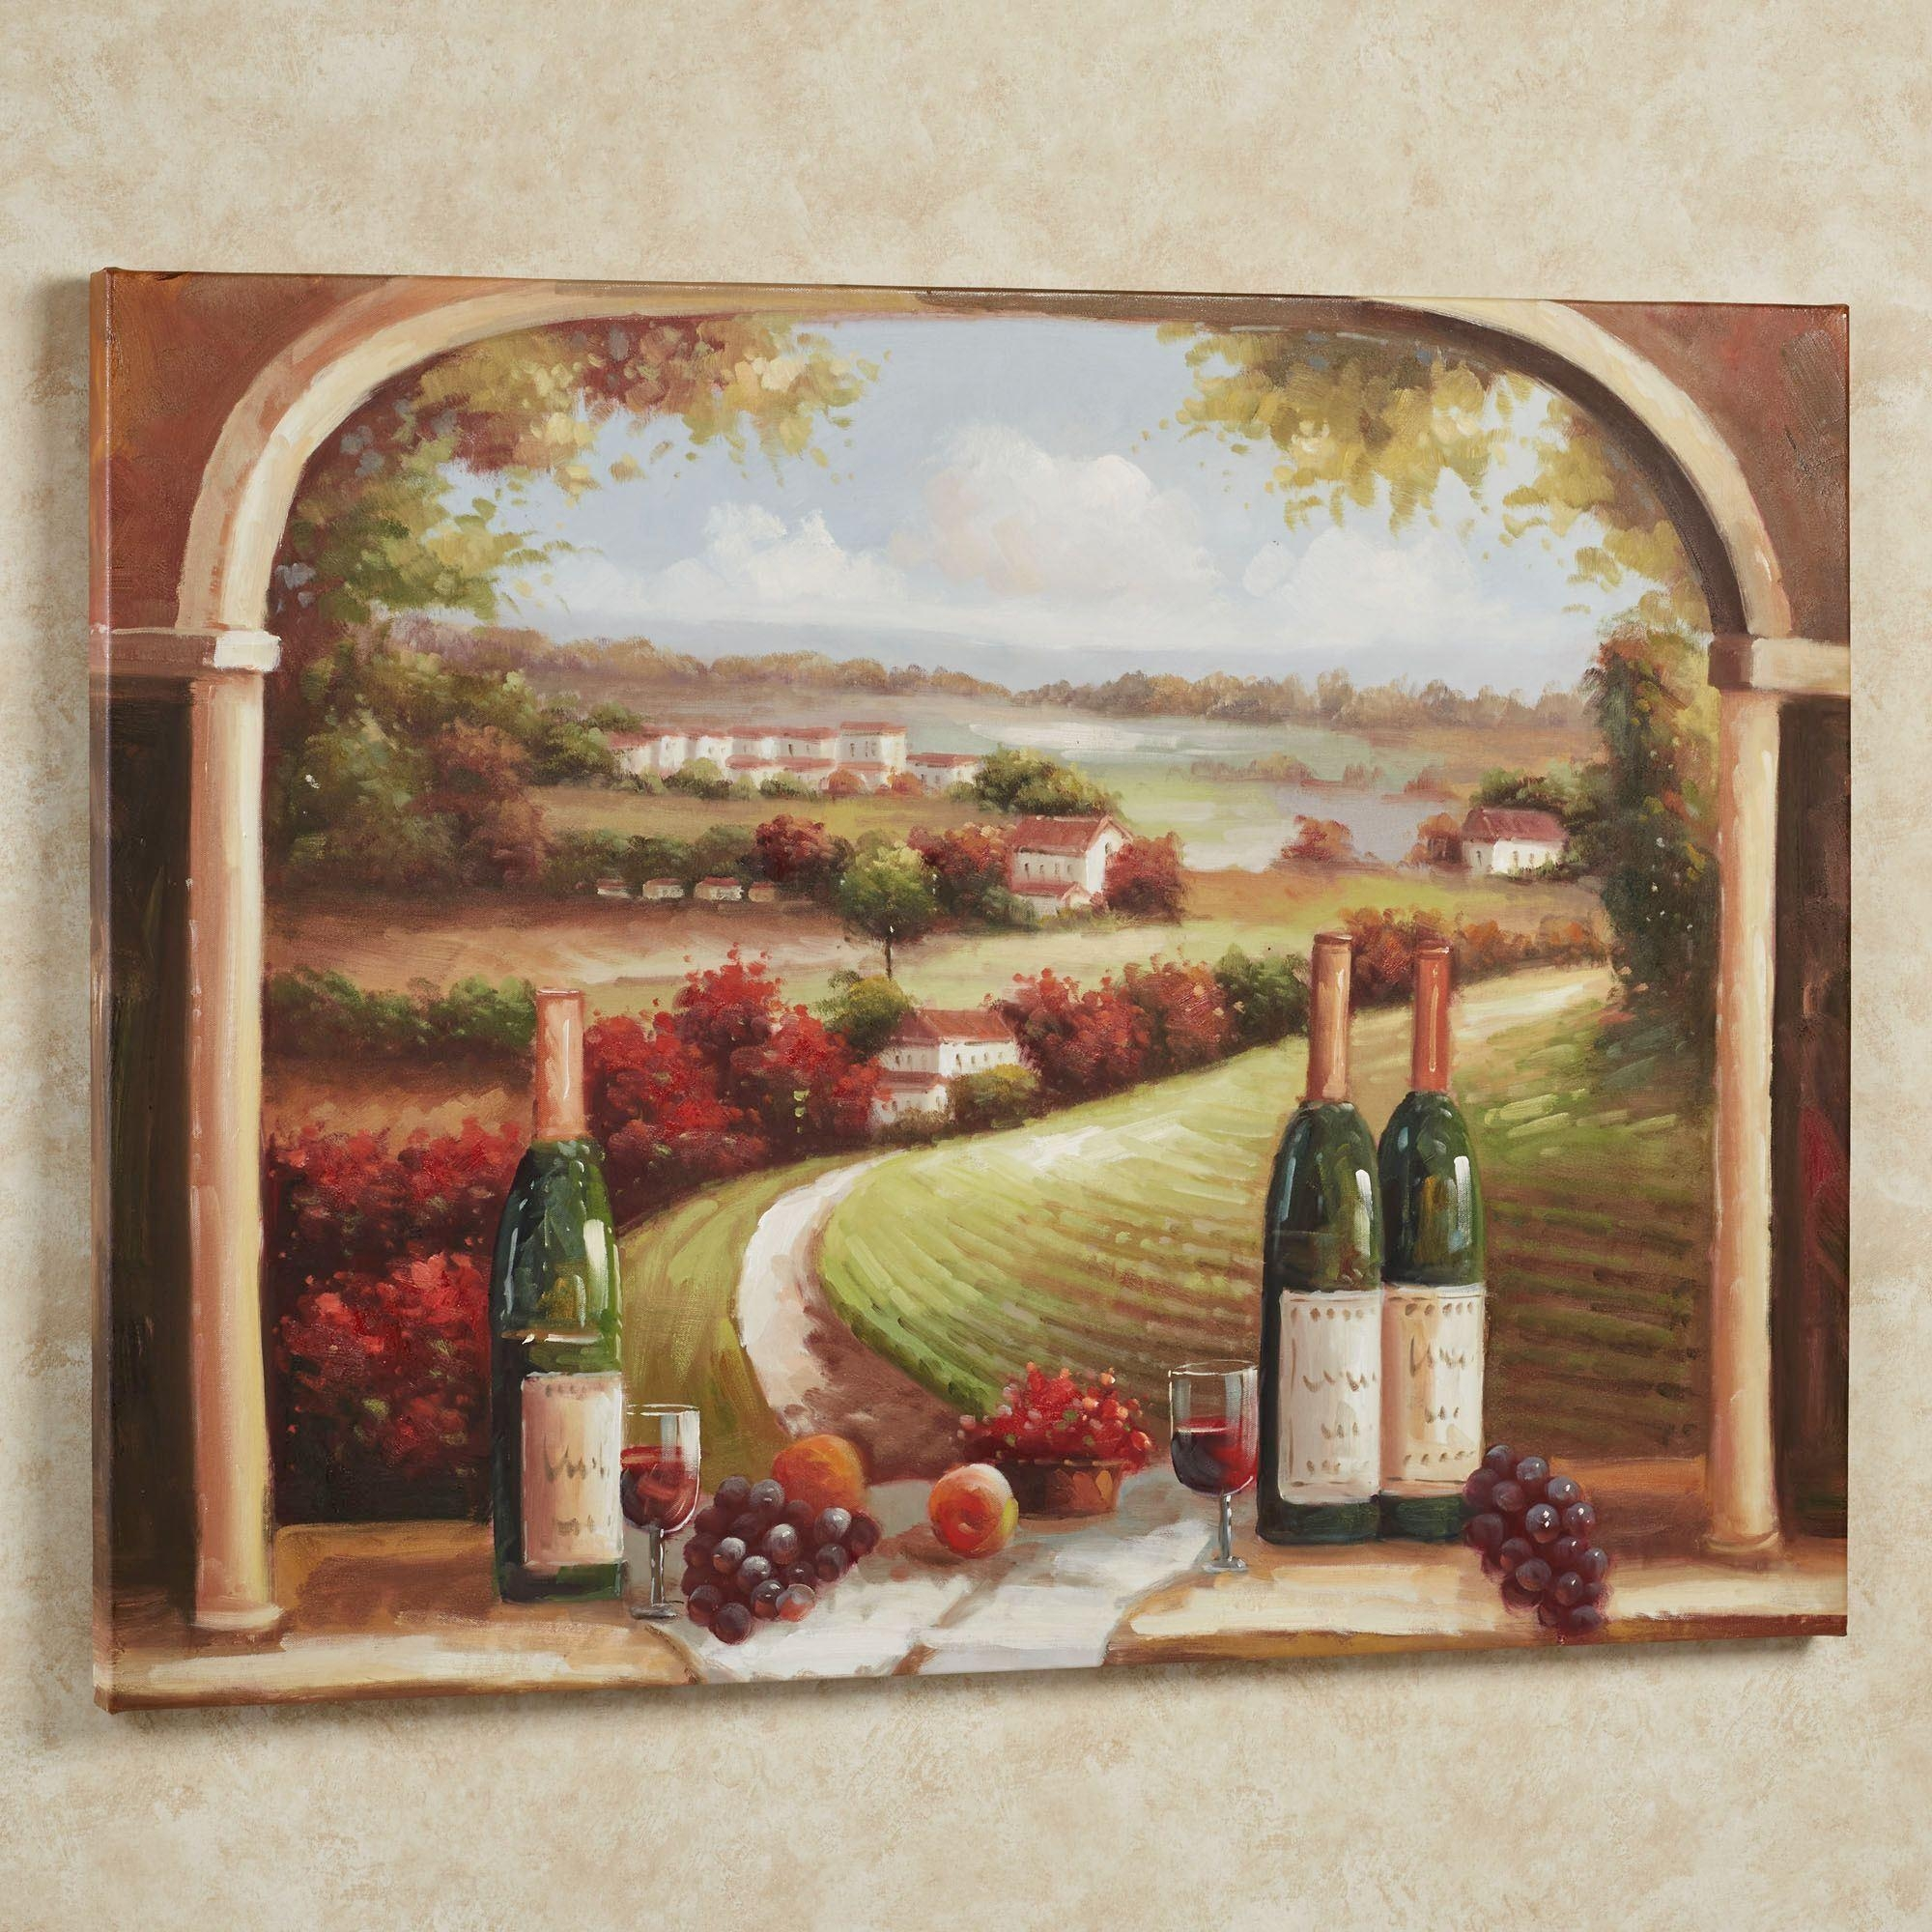 Kitchen And Dining Room Wall Decor | Touch Of Class For Vineyard Wall Art (Image 10 of 20)